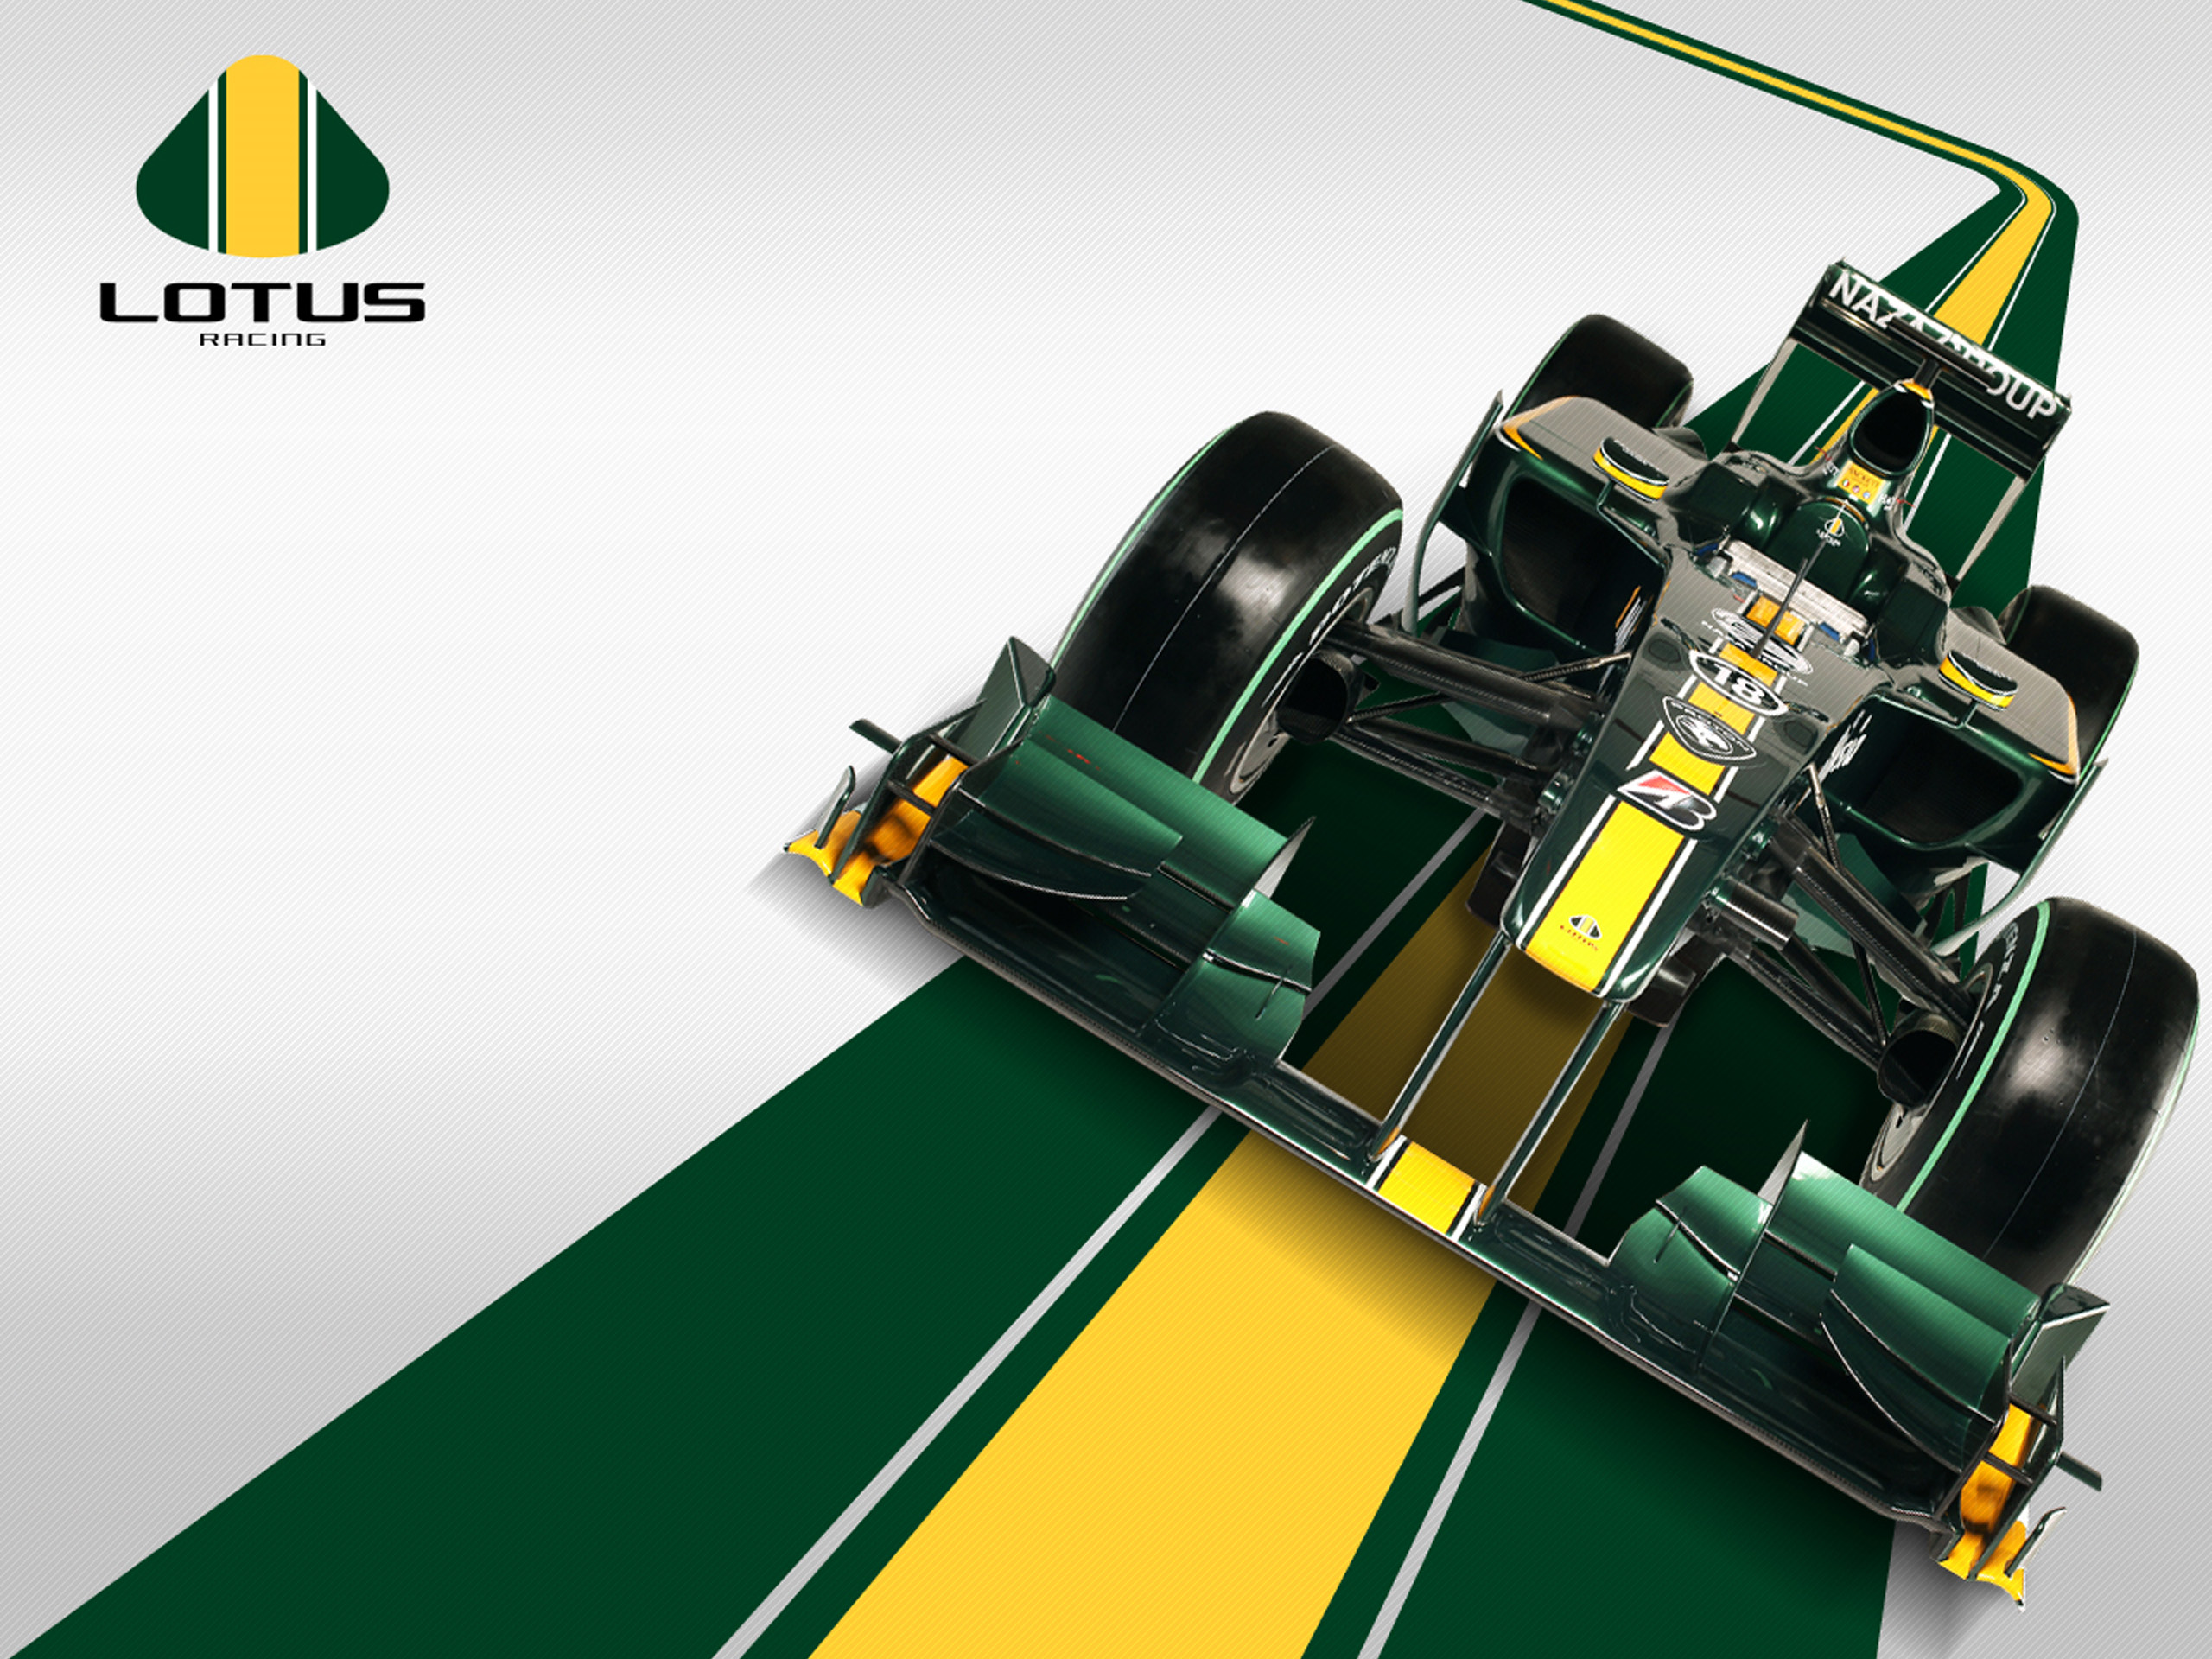 Now Tv F1 Pass Lotus F1 Free Desktop Wallpapers For Widescreen Hd And